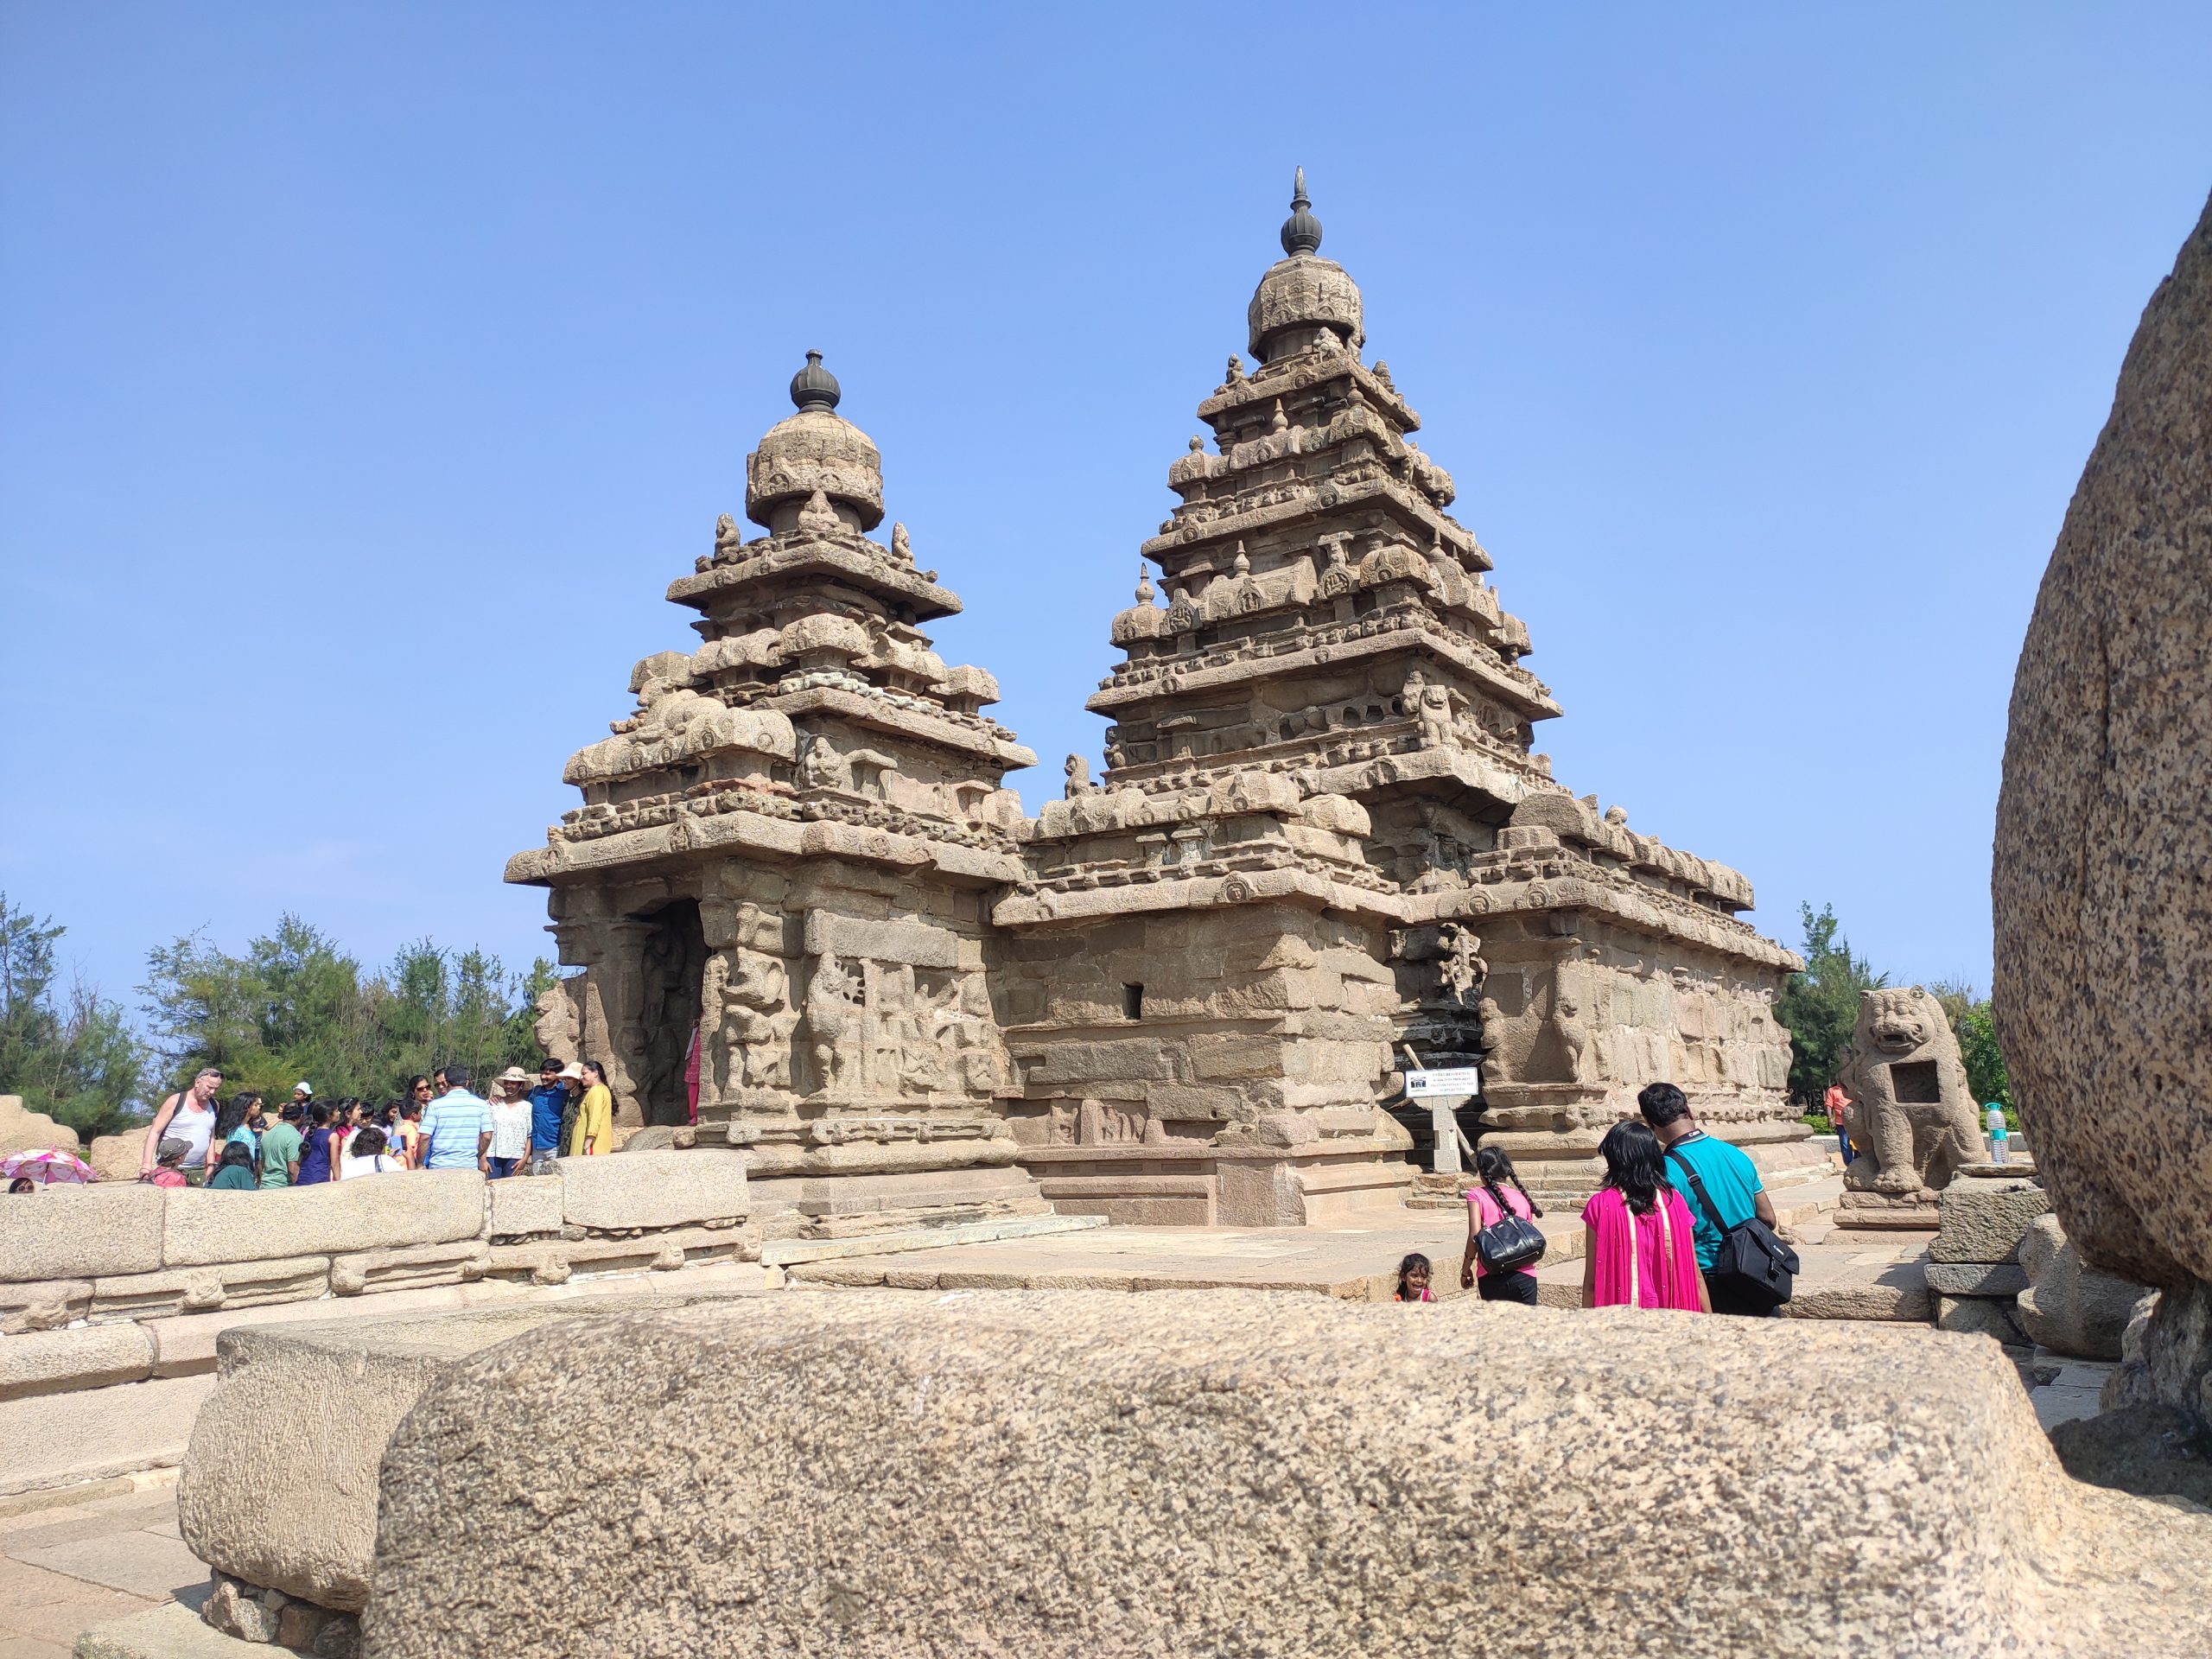 Historic Temple in India.